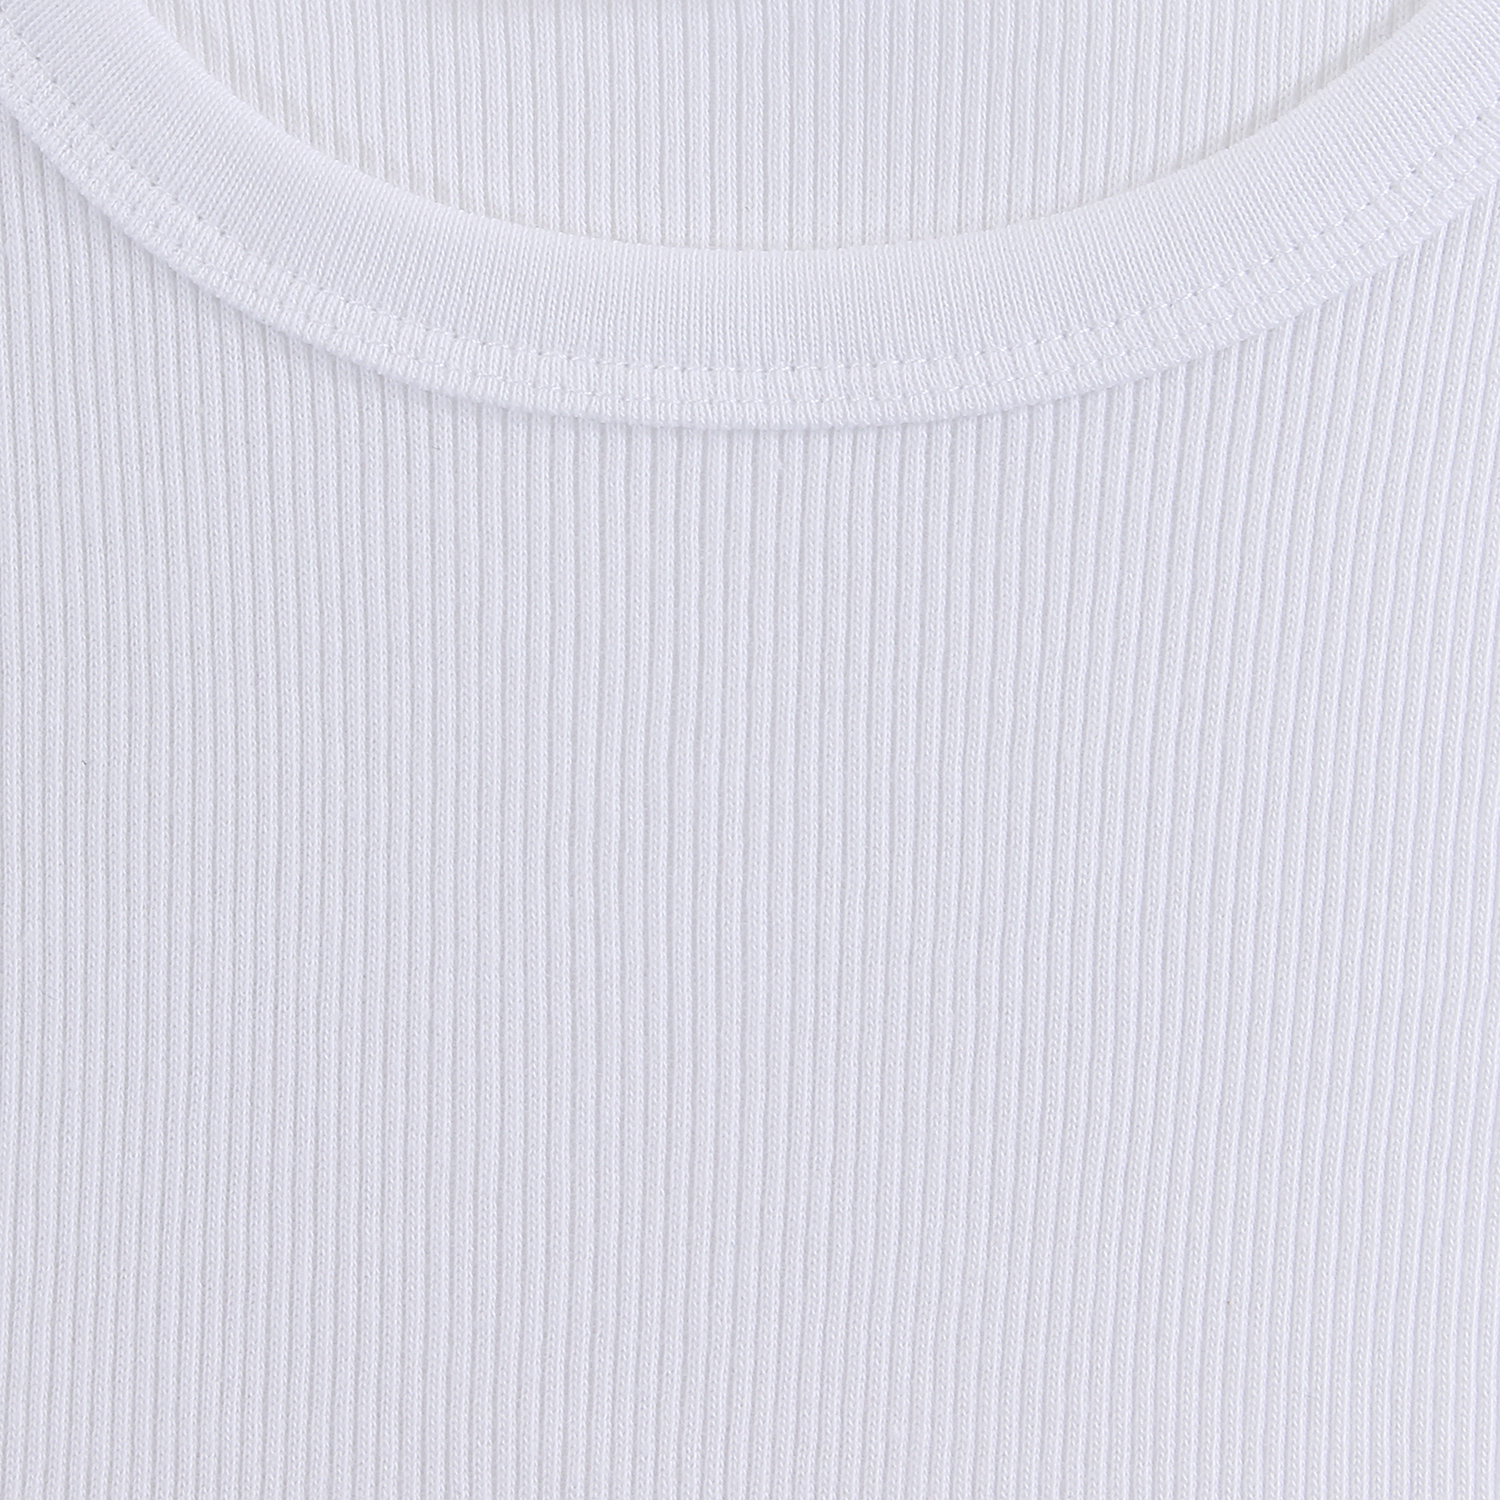 Detail Image to White PRESTIGE undershirt by ADAMO in double rib up to extra large size 20